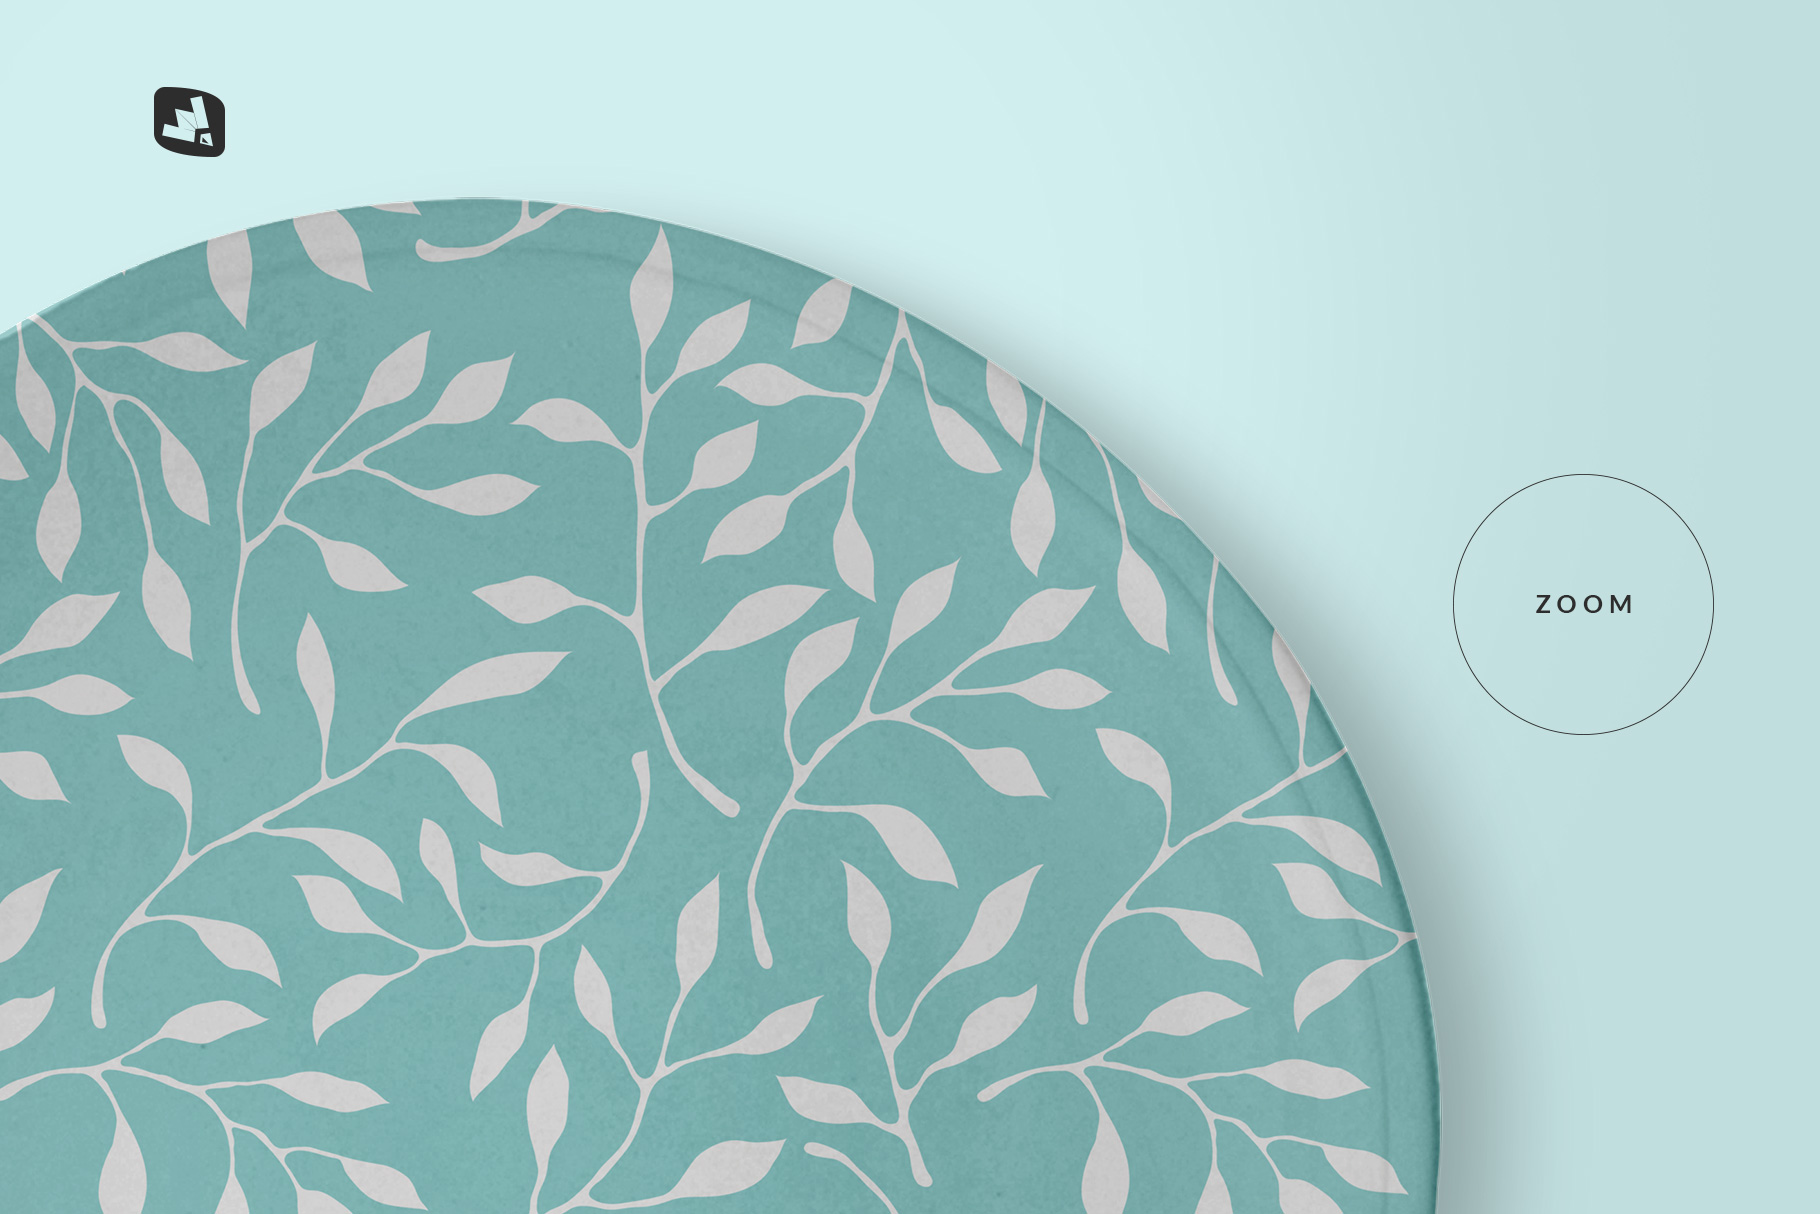 zoomed in image of the top view ceramic dish mockup